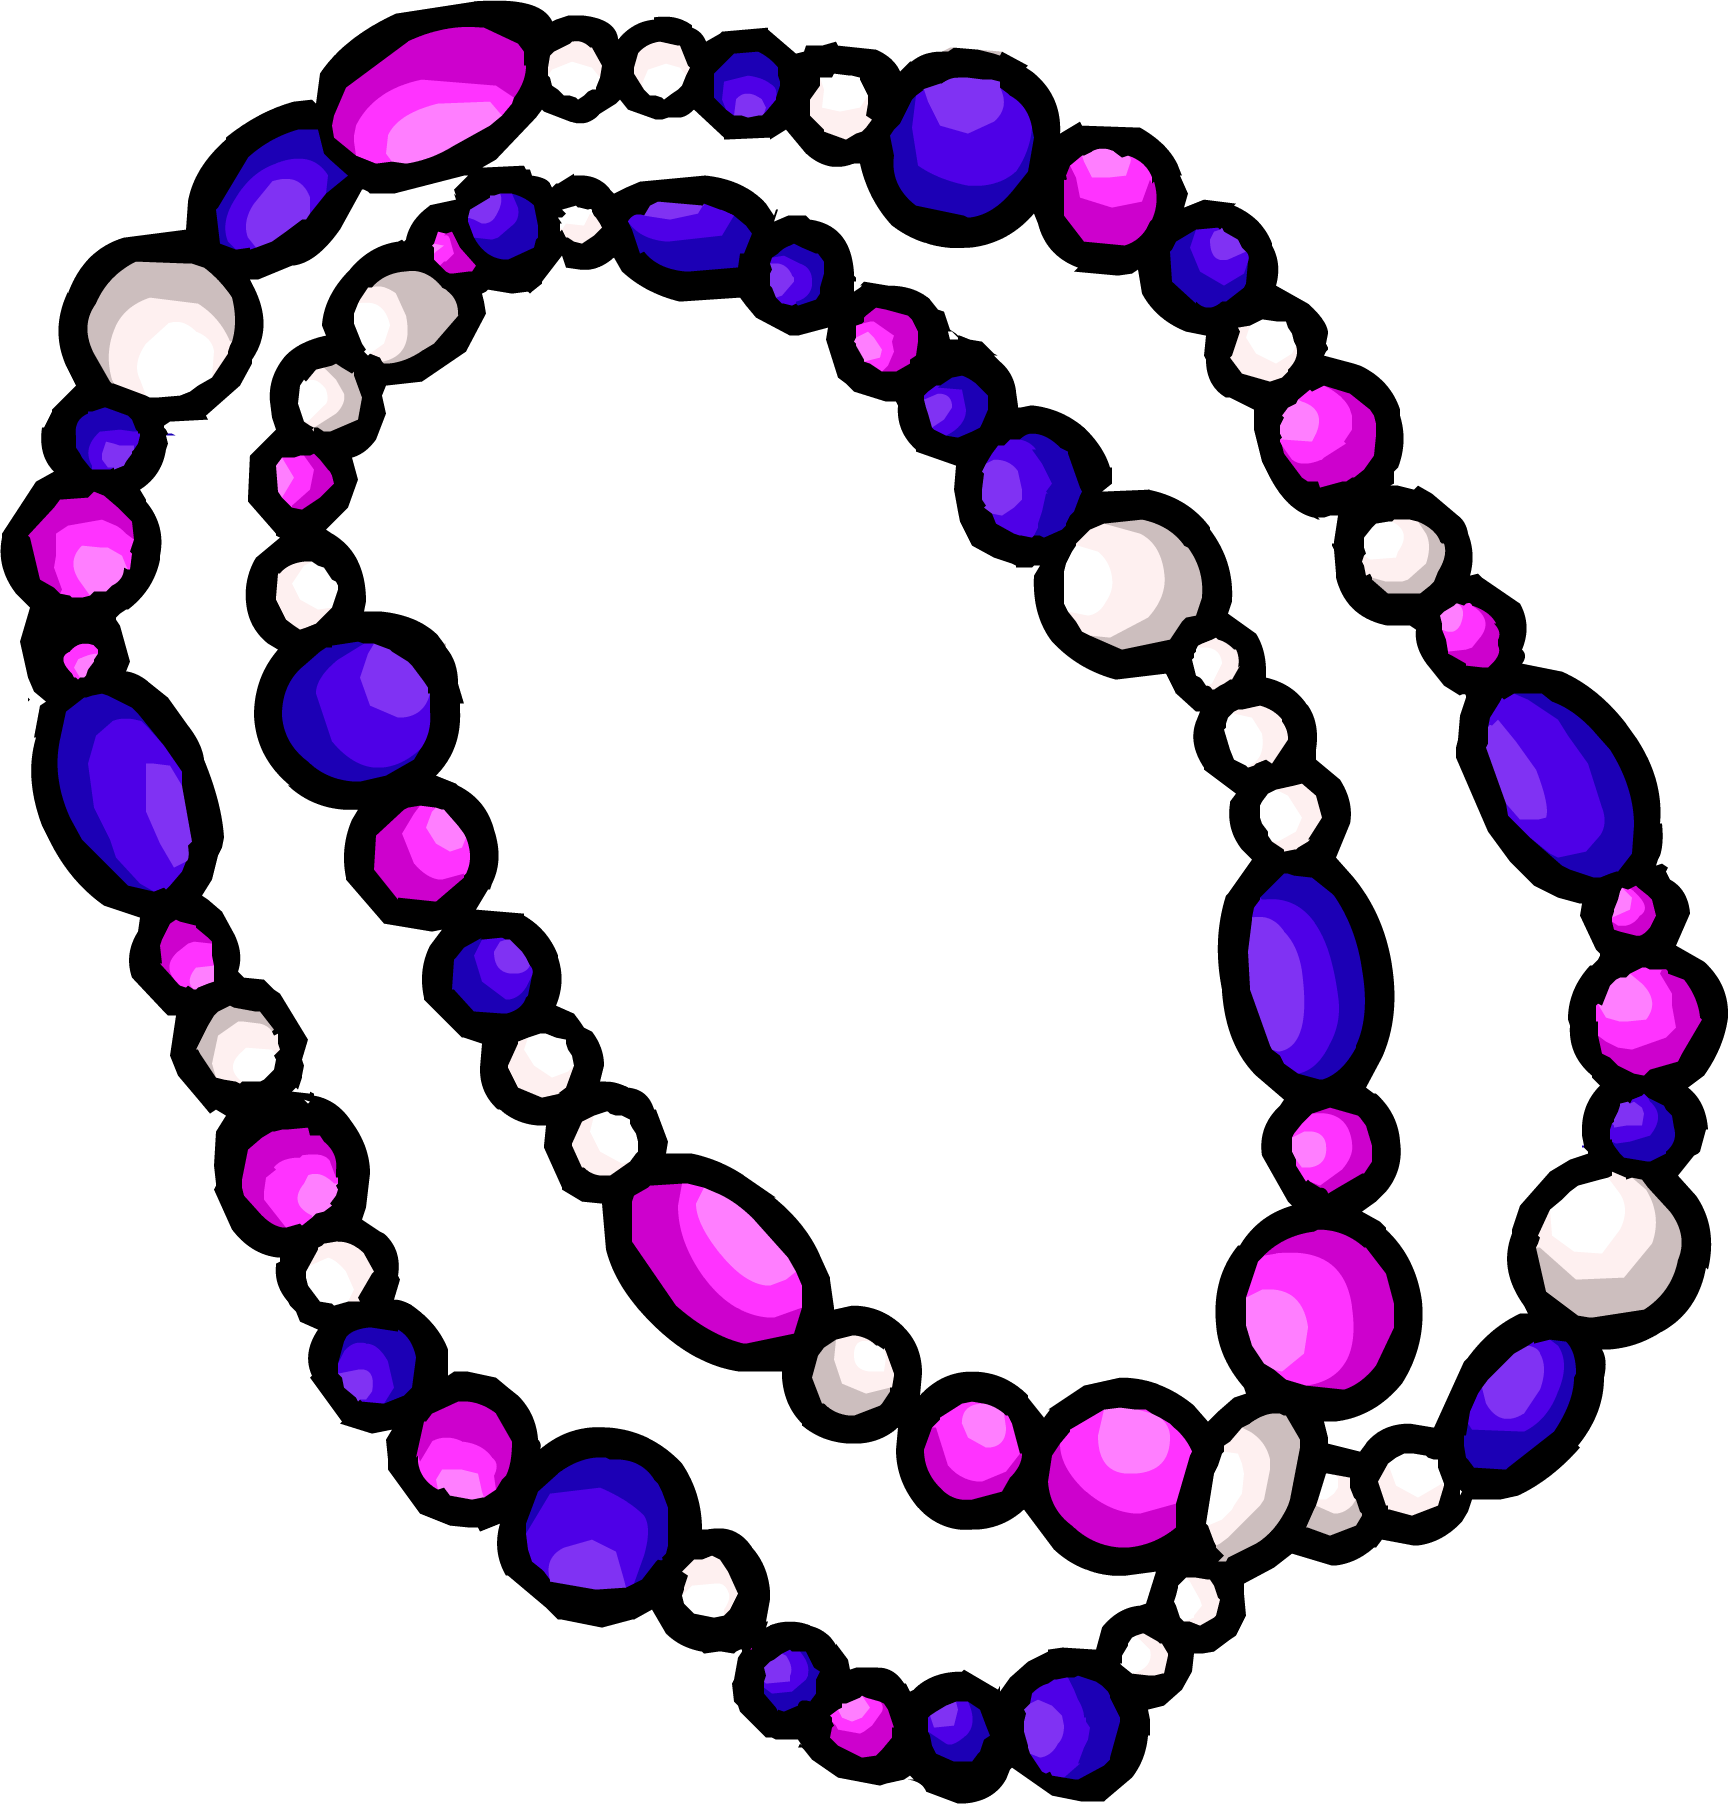 Clipart Of Jewelry, Jewellery And Beads.